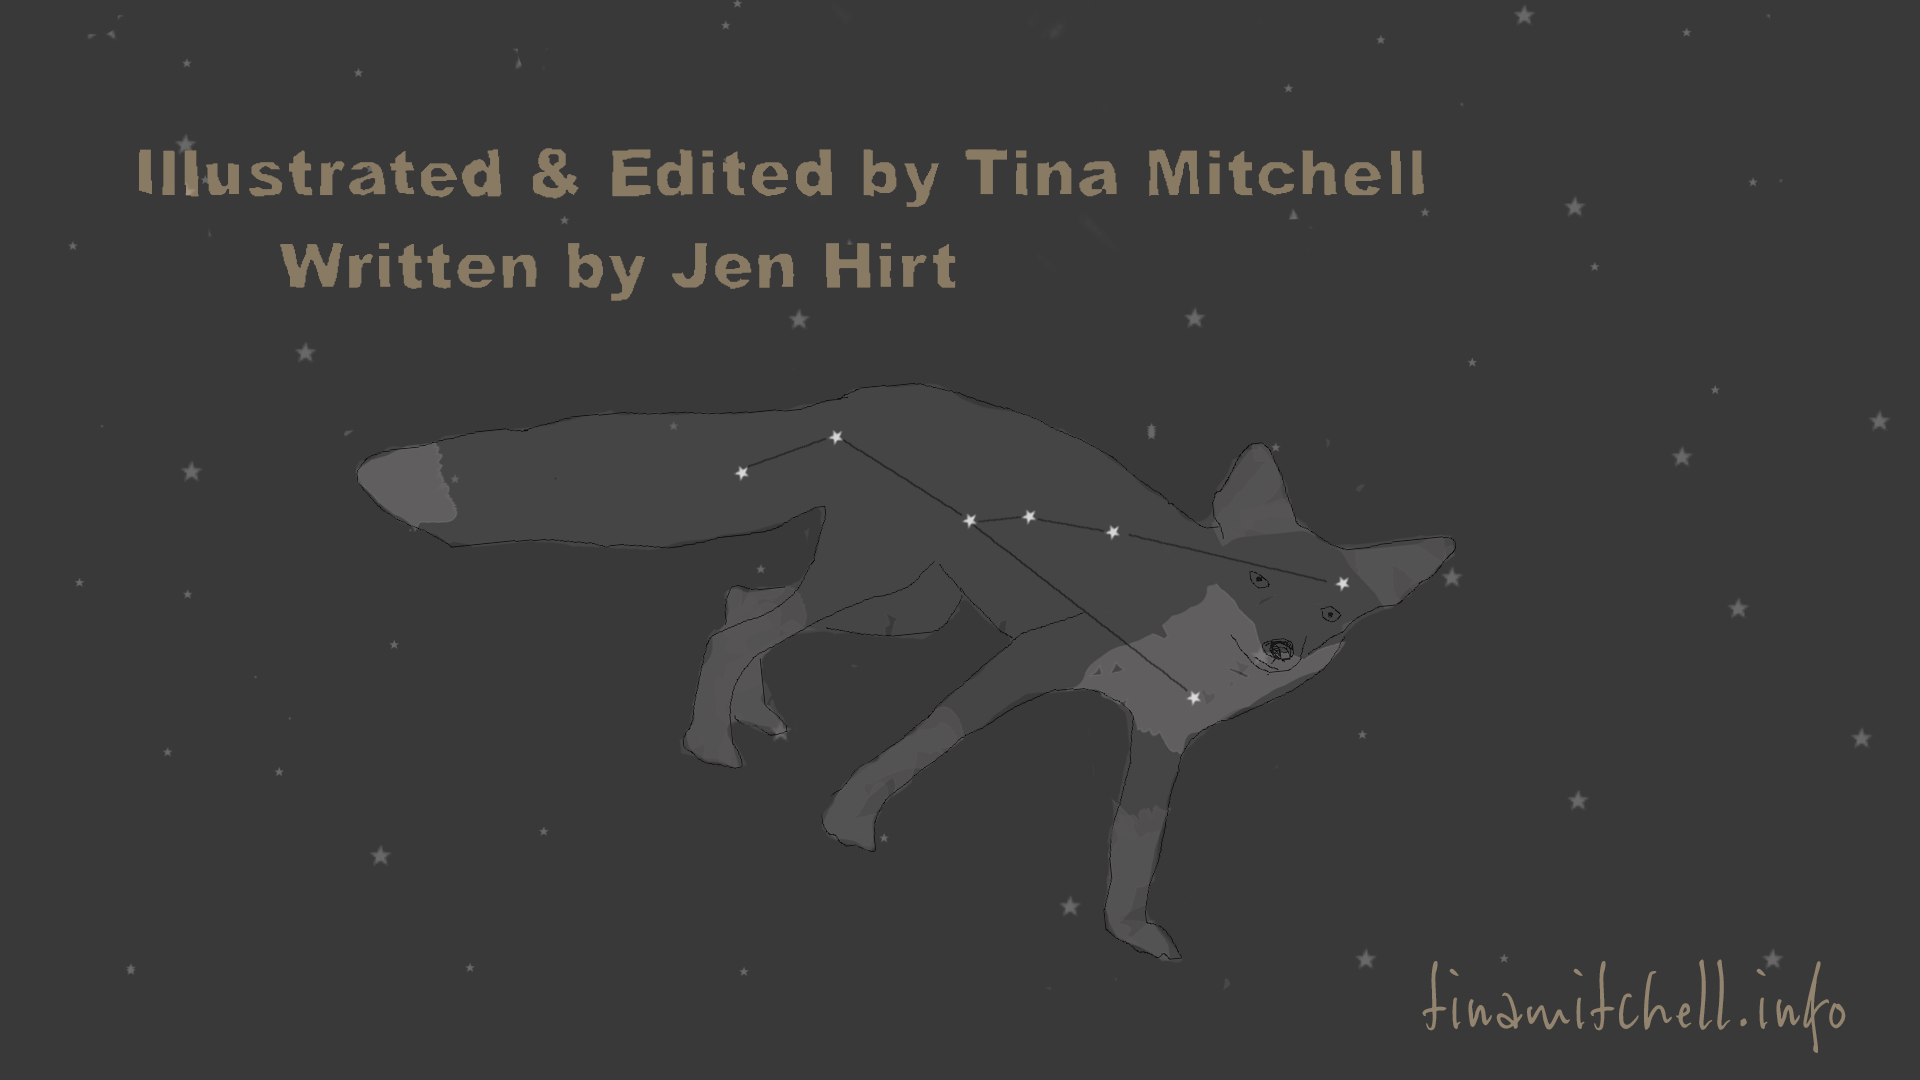 "Final frame of ""Foxes I've Seen by Now"" written by Jen Hirt and illustrated by Tina Mitchell. Image of fox constellation."